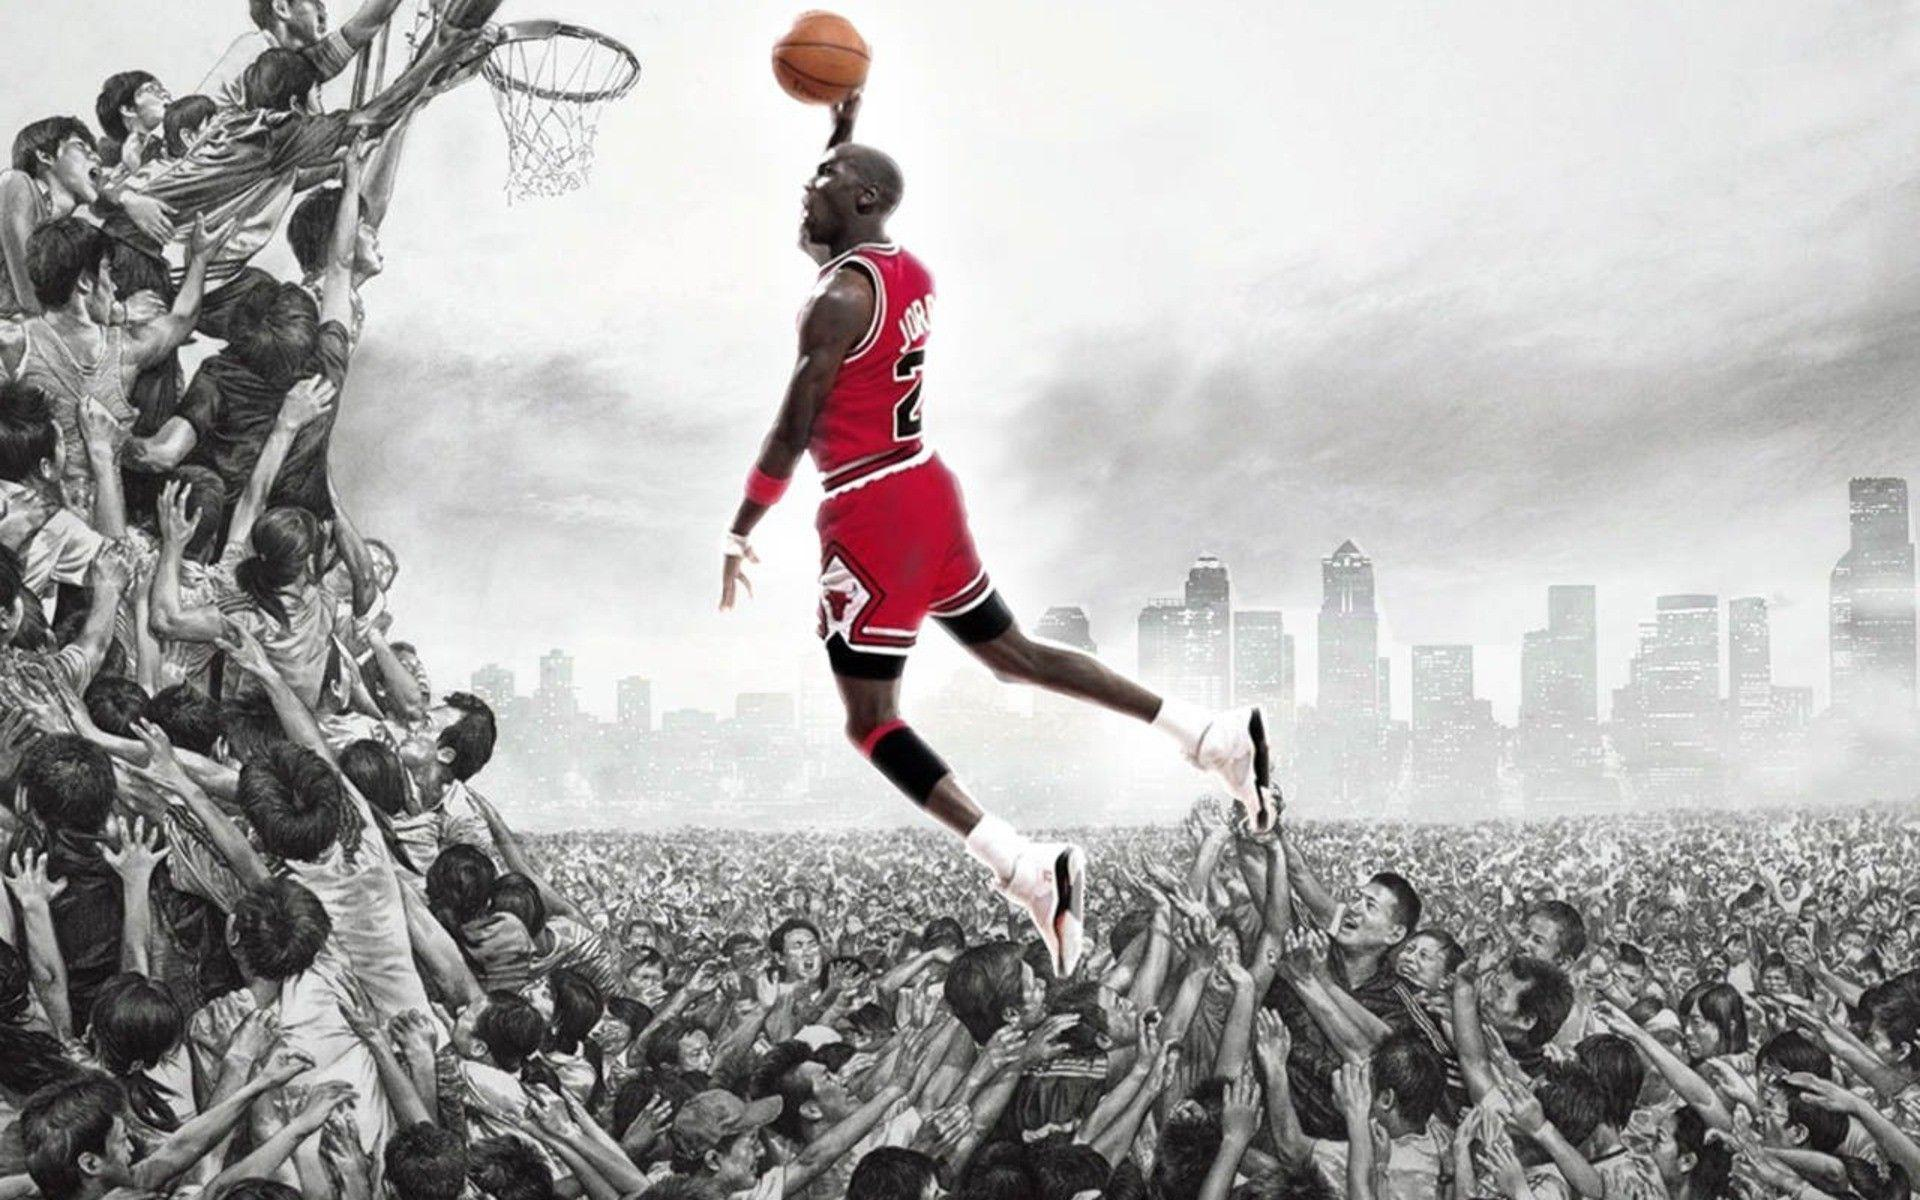 Wallpaper iphone jordan - Jordan Shoes Iphone 5 Wallpaper Wallpaper Hdgalaxywallpaper